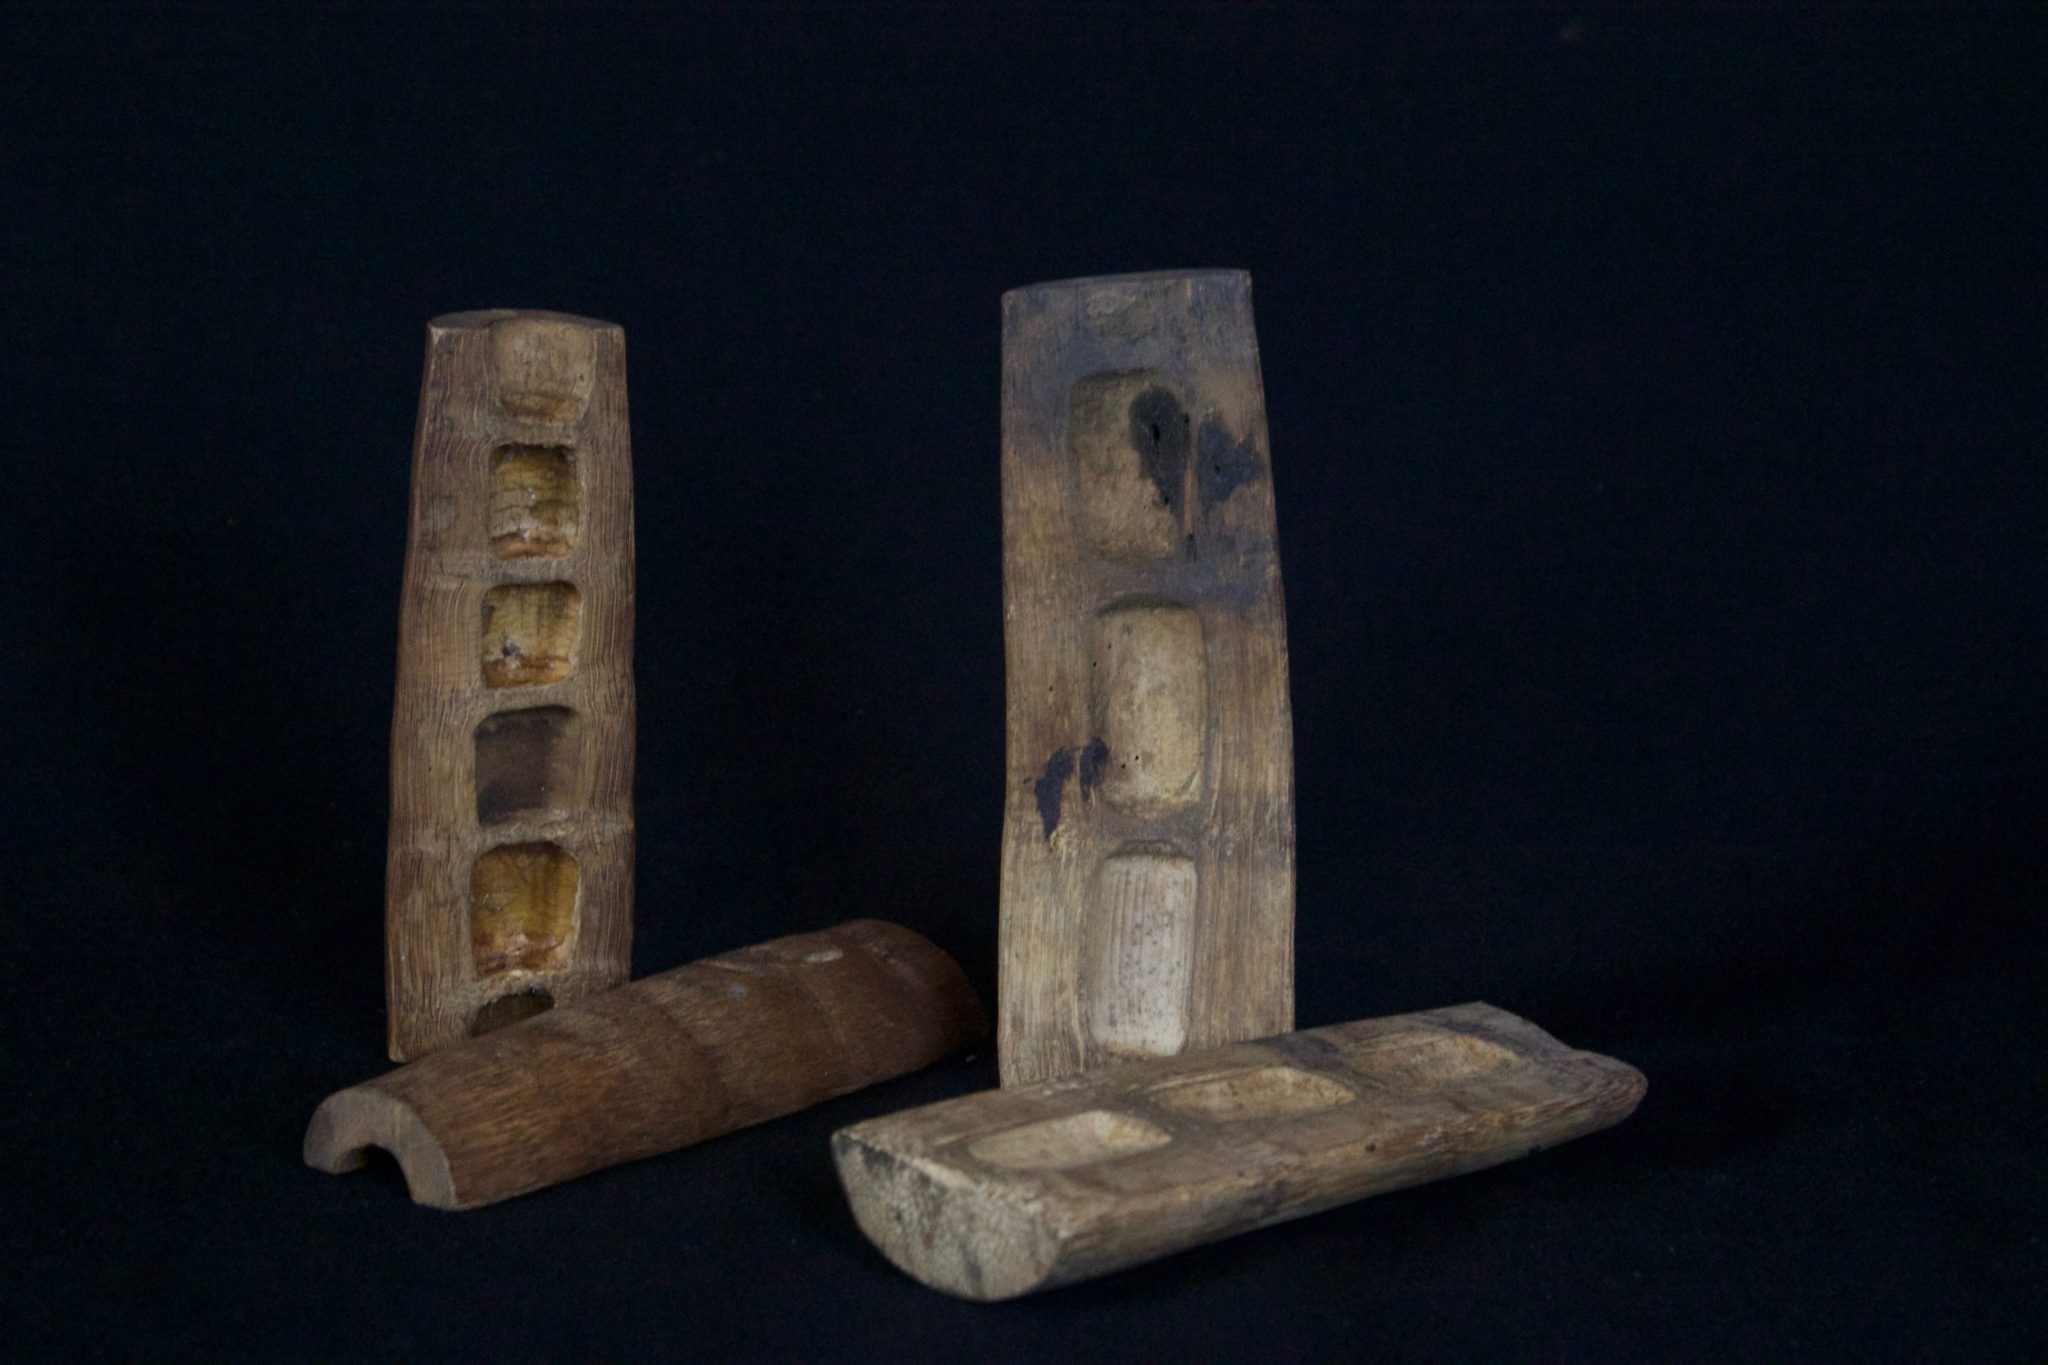 """Yin Yang Divination Blocks, Vietnam, Early 20th c, Bamboo, These pairs of blocks are used by shaman to get answers to questions and requests. They are round on the yin side and flat on the yang side. They are thrown like dice. The answer is determined by the configuration of how they land: 1 yin and 1 yang side up = YES; Both the same side up = NO (also typically made of wood or horn) $175 each set. Dimensions: (right - 5"""" x 1 ¾"""" x 1 ½""""); (left - 4 ¾"""" x 1 ½"""" x 1 ½"""")"""